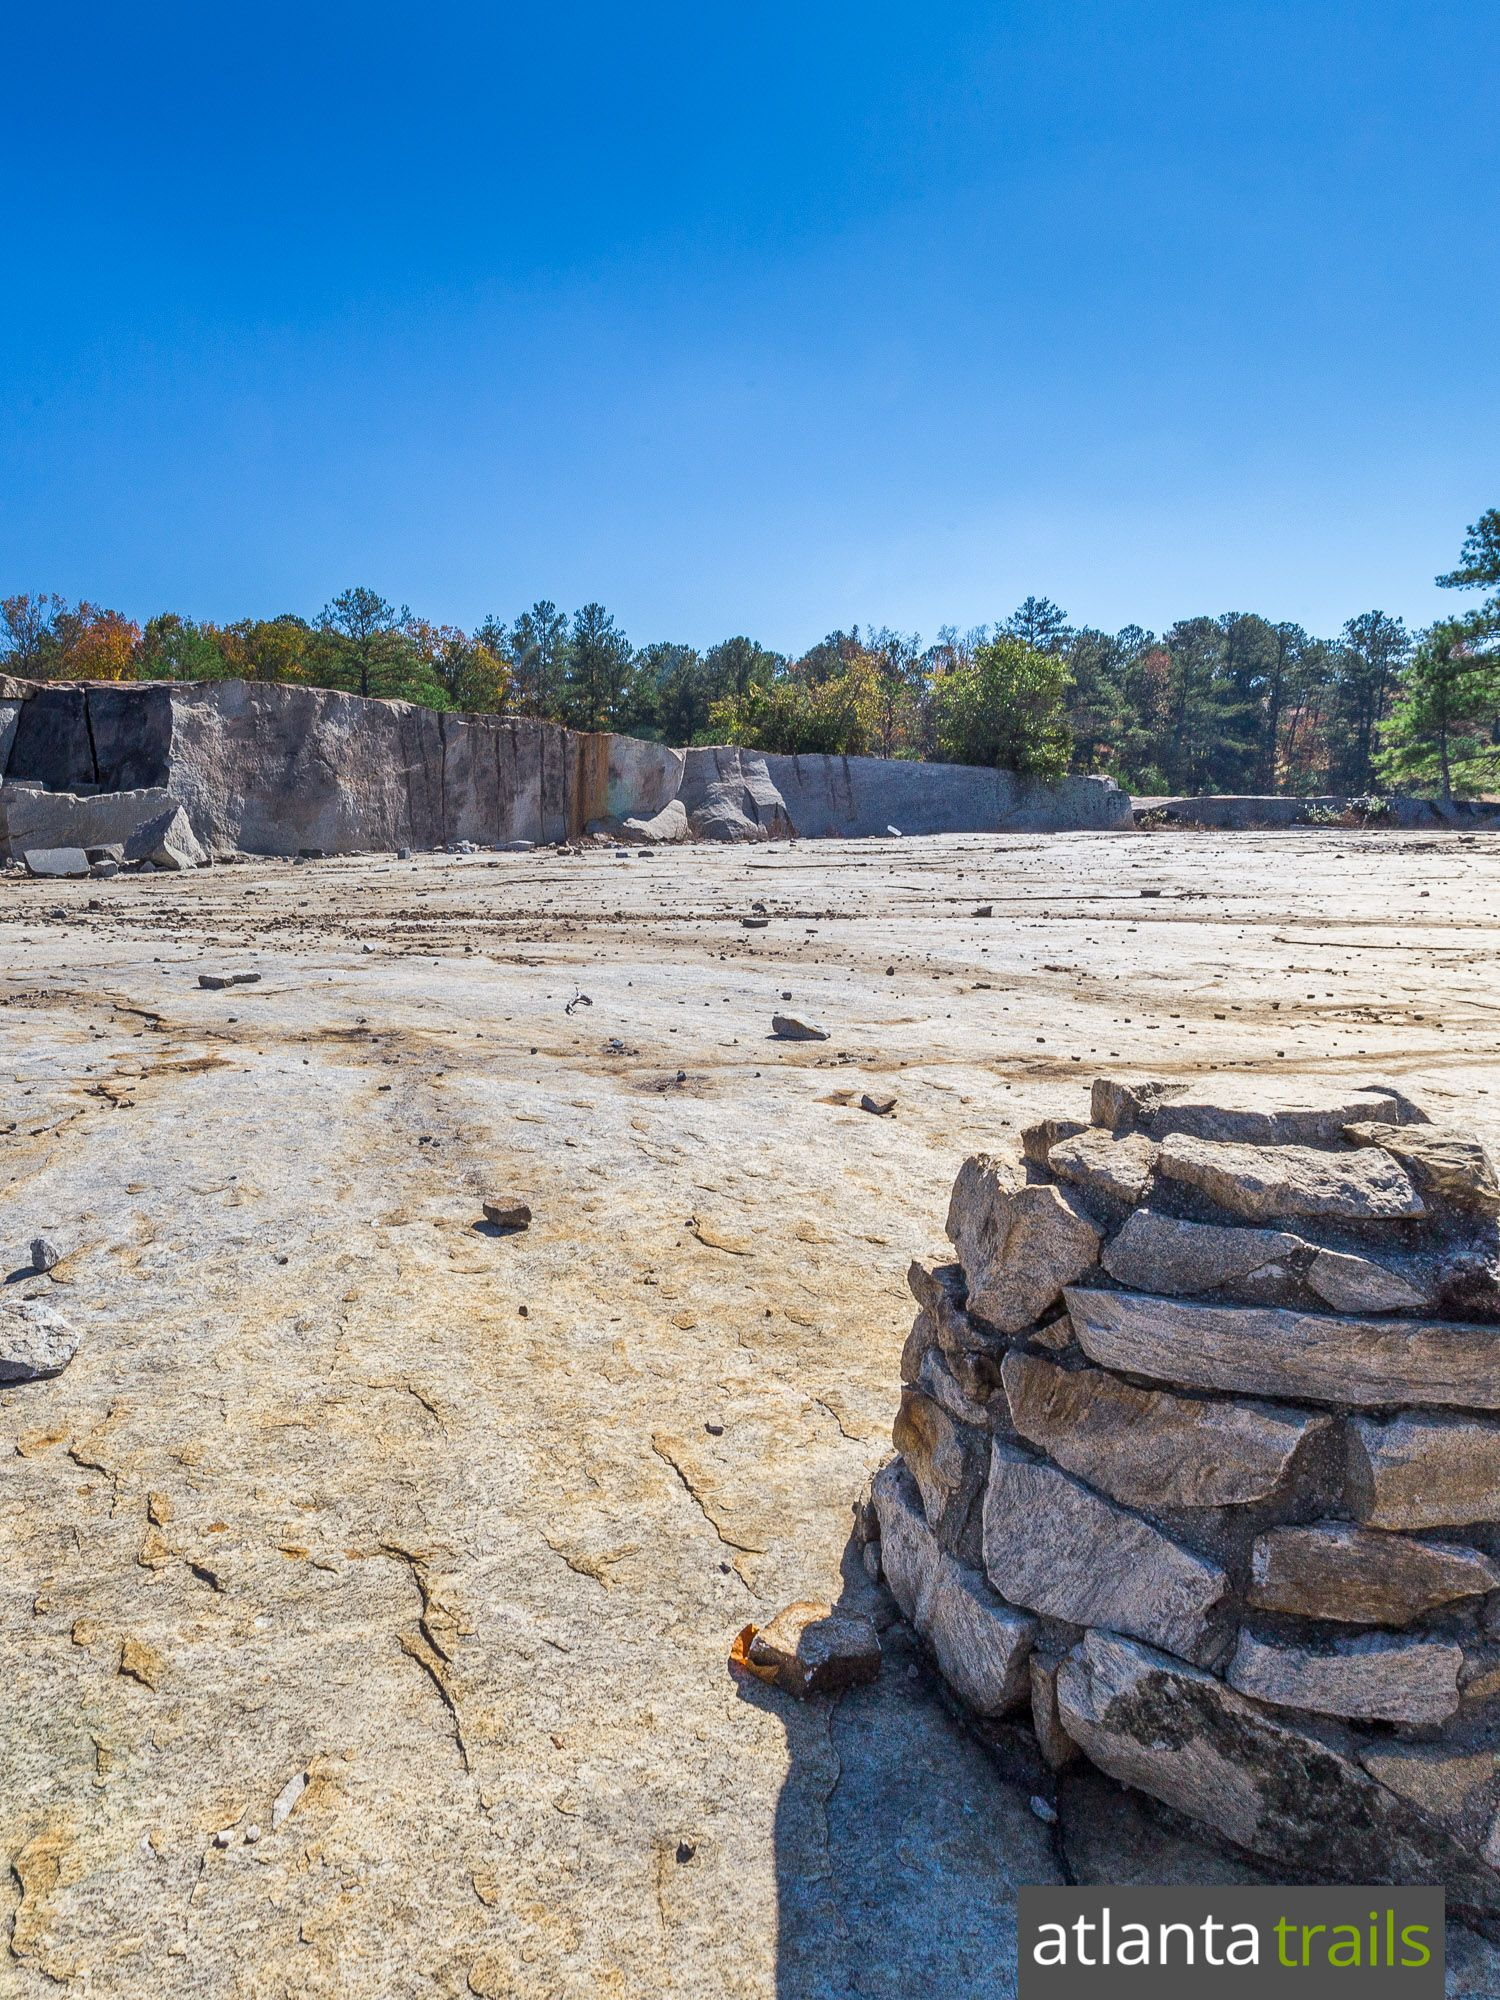 Facts about the kingdom of saudi arabia, including its demographics, climate, economy, and more, as well as a brief history of the region. Arabia Mountain Mile Rock Trail Forest Trail Loop Hiking In Georgia Forest Trail Georgia Photography